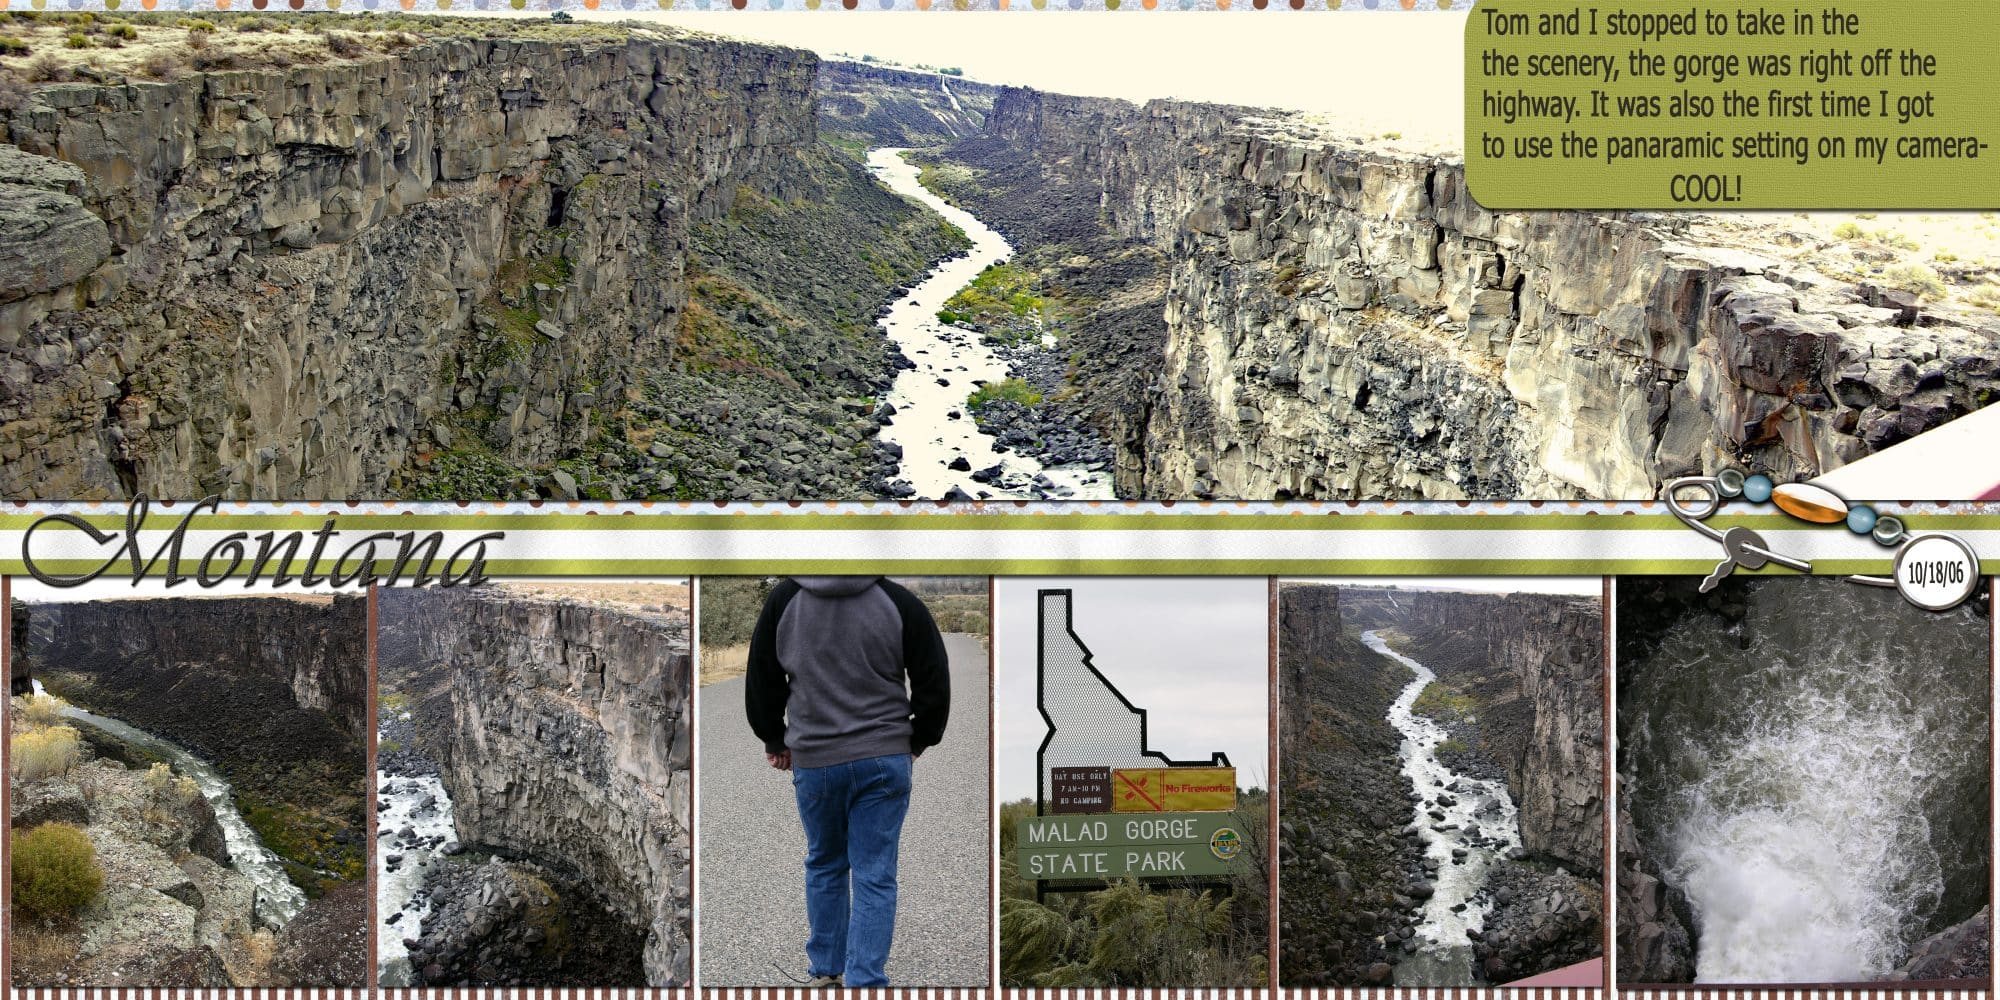 Halifax wedding photographer Sandra Adamson's life on the road as a long hauler in the Montana Malad Gorge.